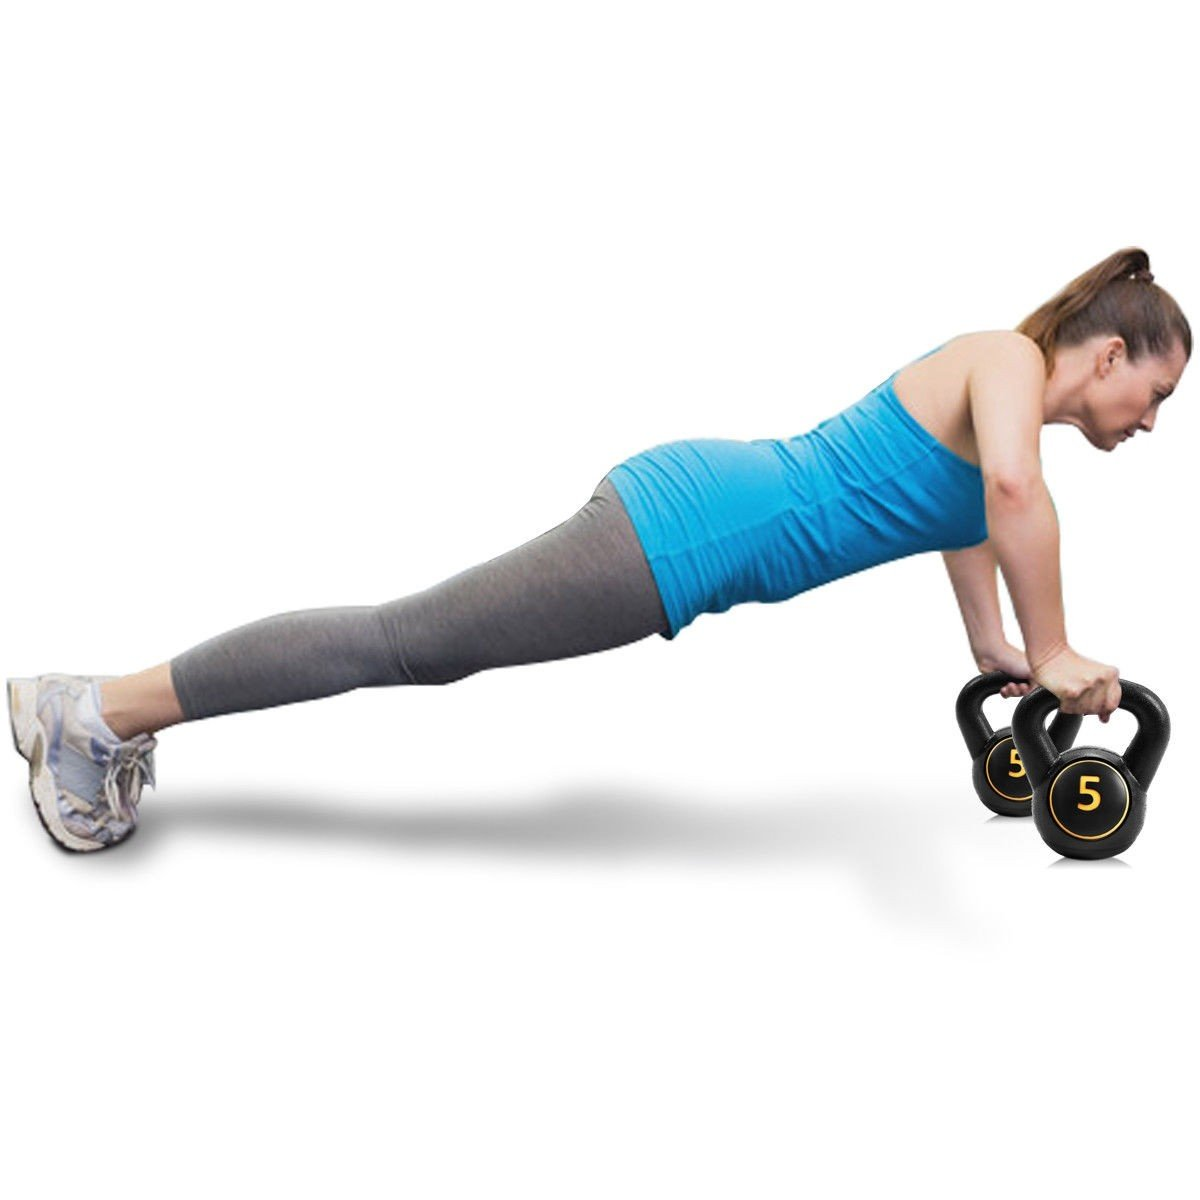 MD Group 3 pcs 5 10 15lbs Kettlebell Kettle Bell Weight Set by MD Group (Image #8)